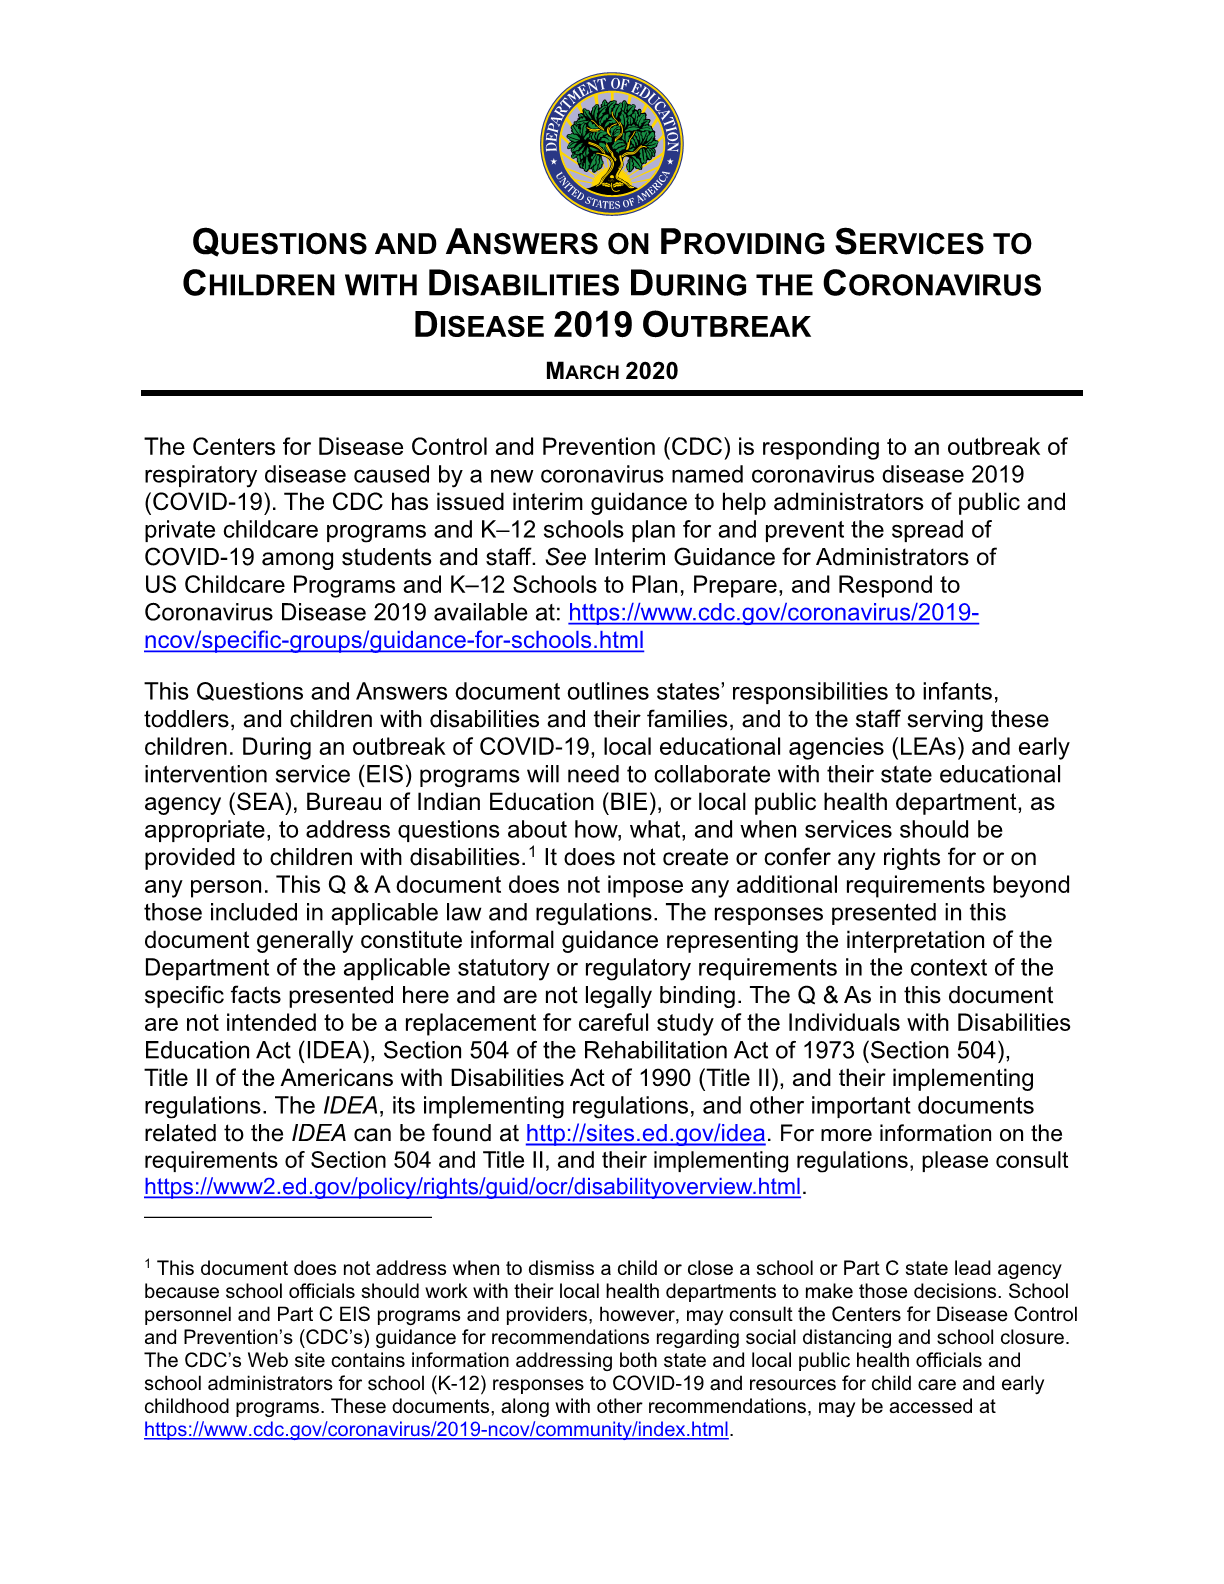 Questions and Answers on Providing Services to Children with Disabilities During the Coronavirus Disease 2019 Outbreak